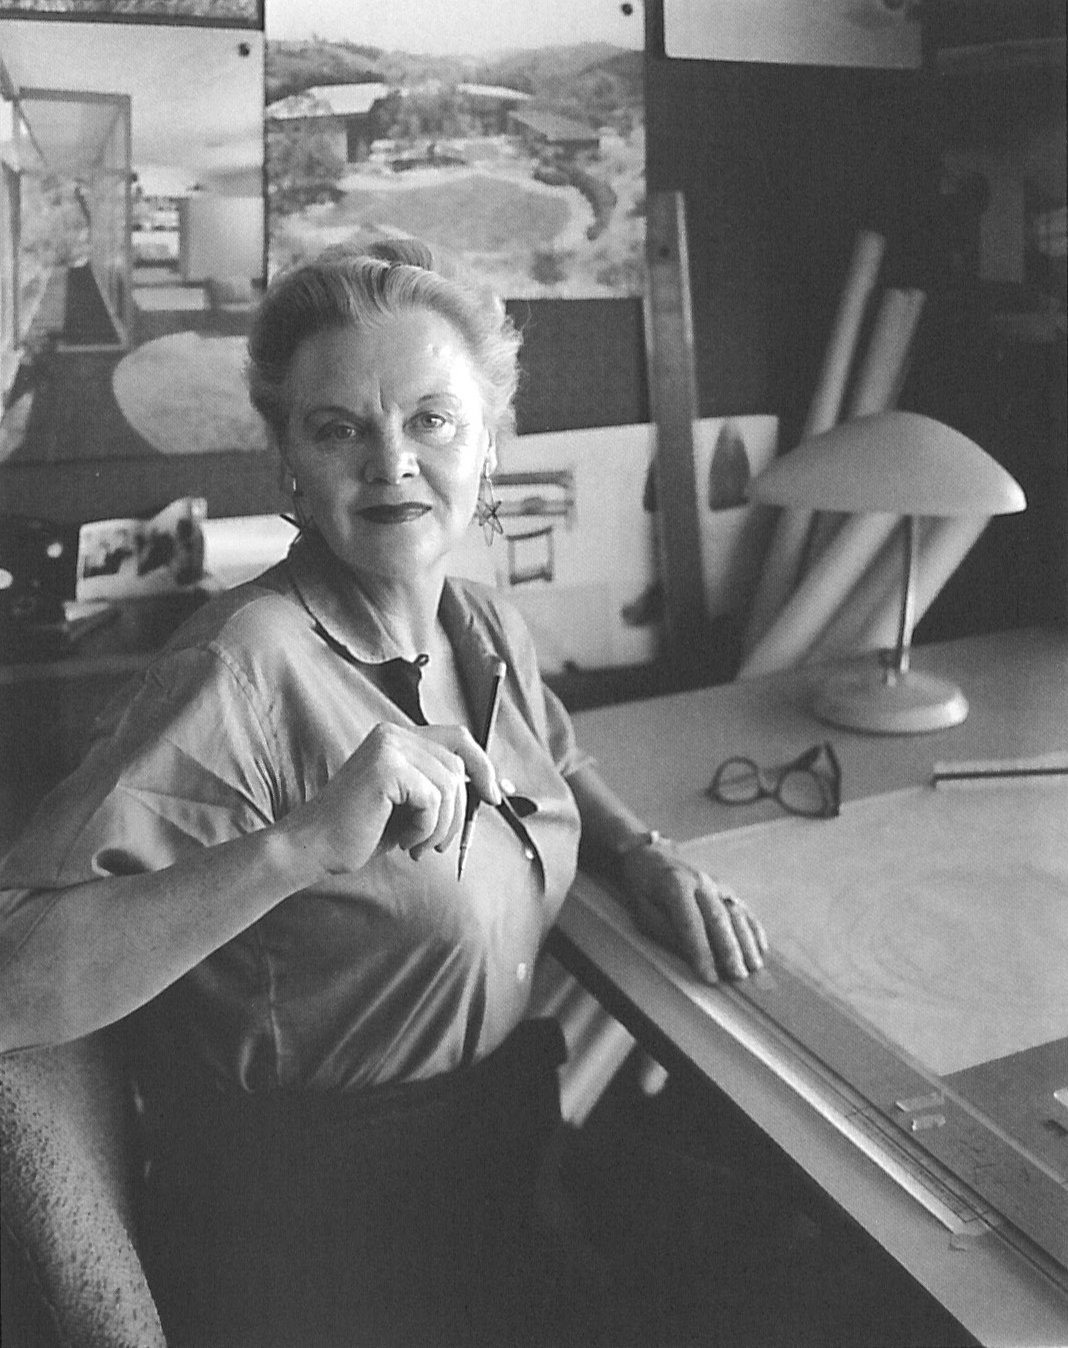 """Grossman made a name for herself in the male-dominated architecture scene in Los Angeles, saying working as a female architect """"kept you on your toes. You had to be a step ahead or else."""" Grossman photographed by Julius Shulman in 1959.  Photo 8 of 8 in Design Icon: Greta Grossman"""